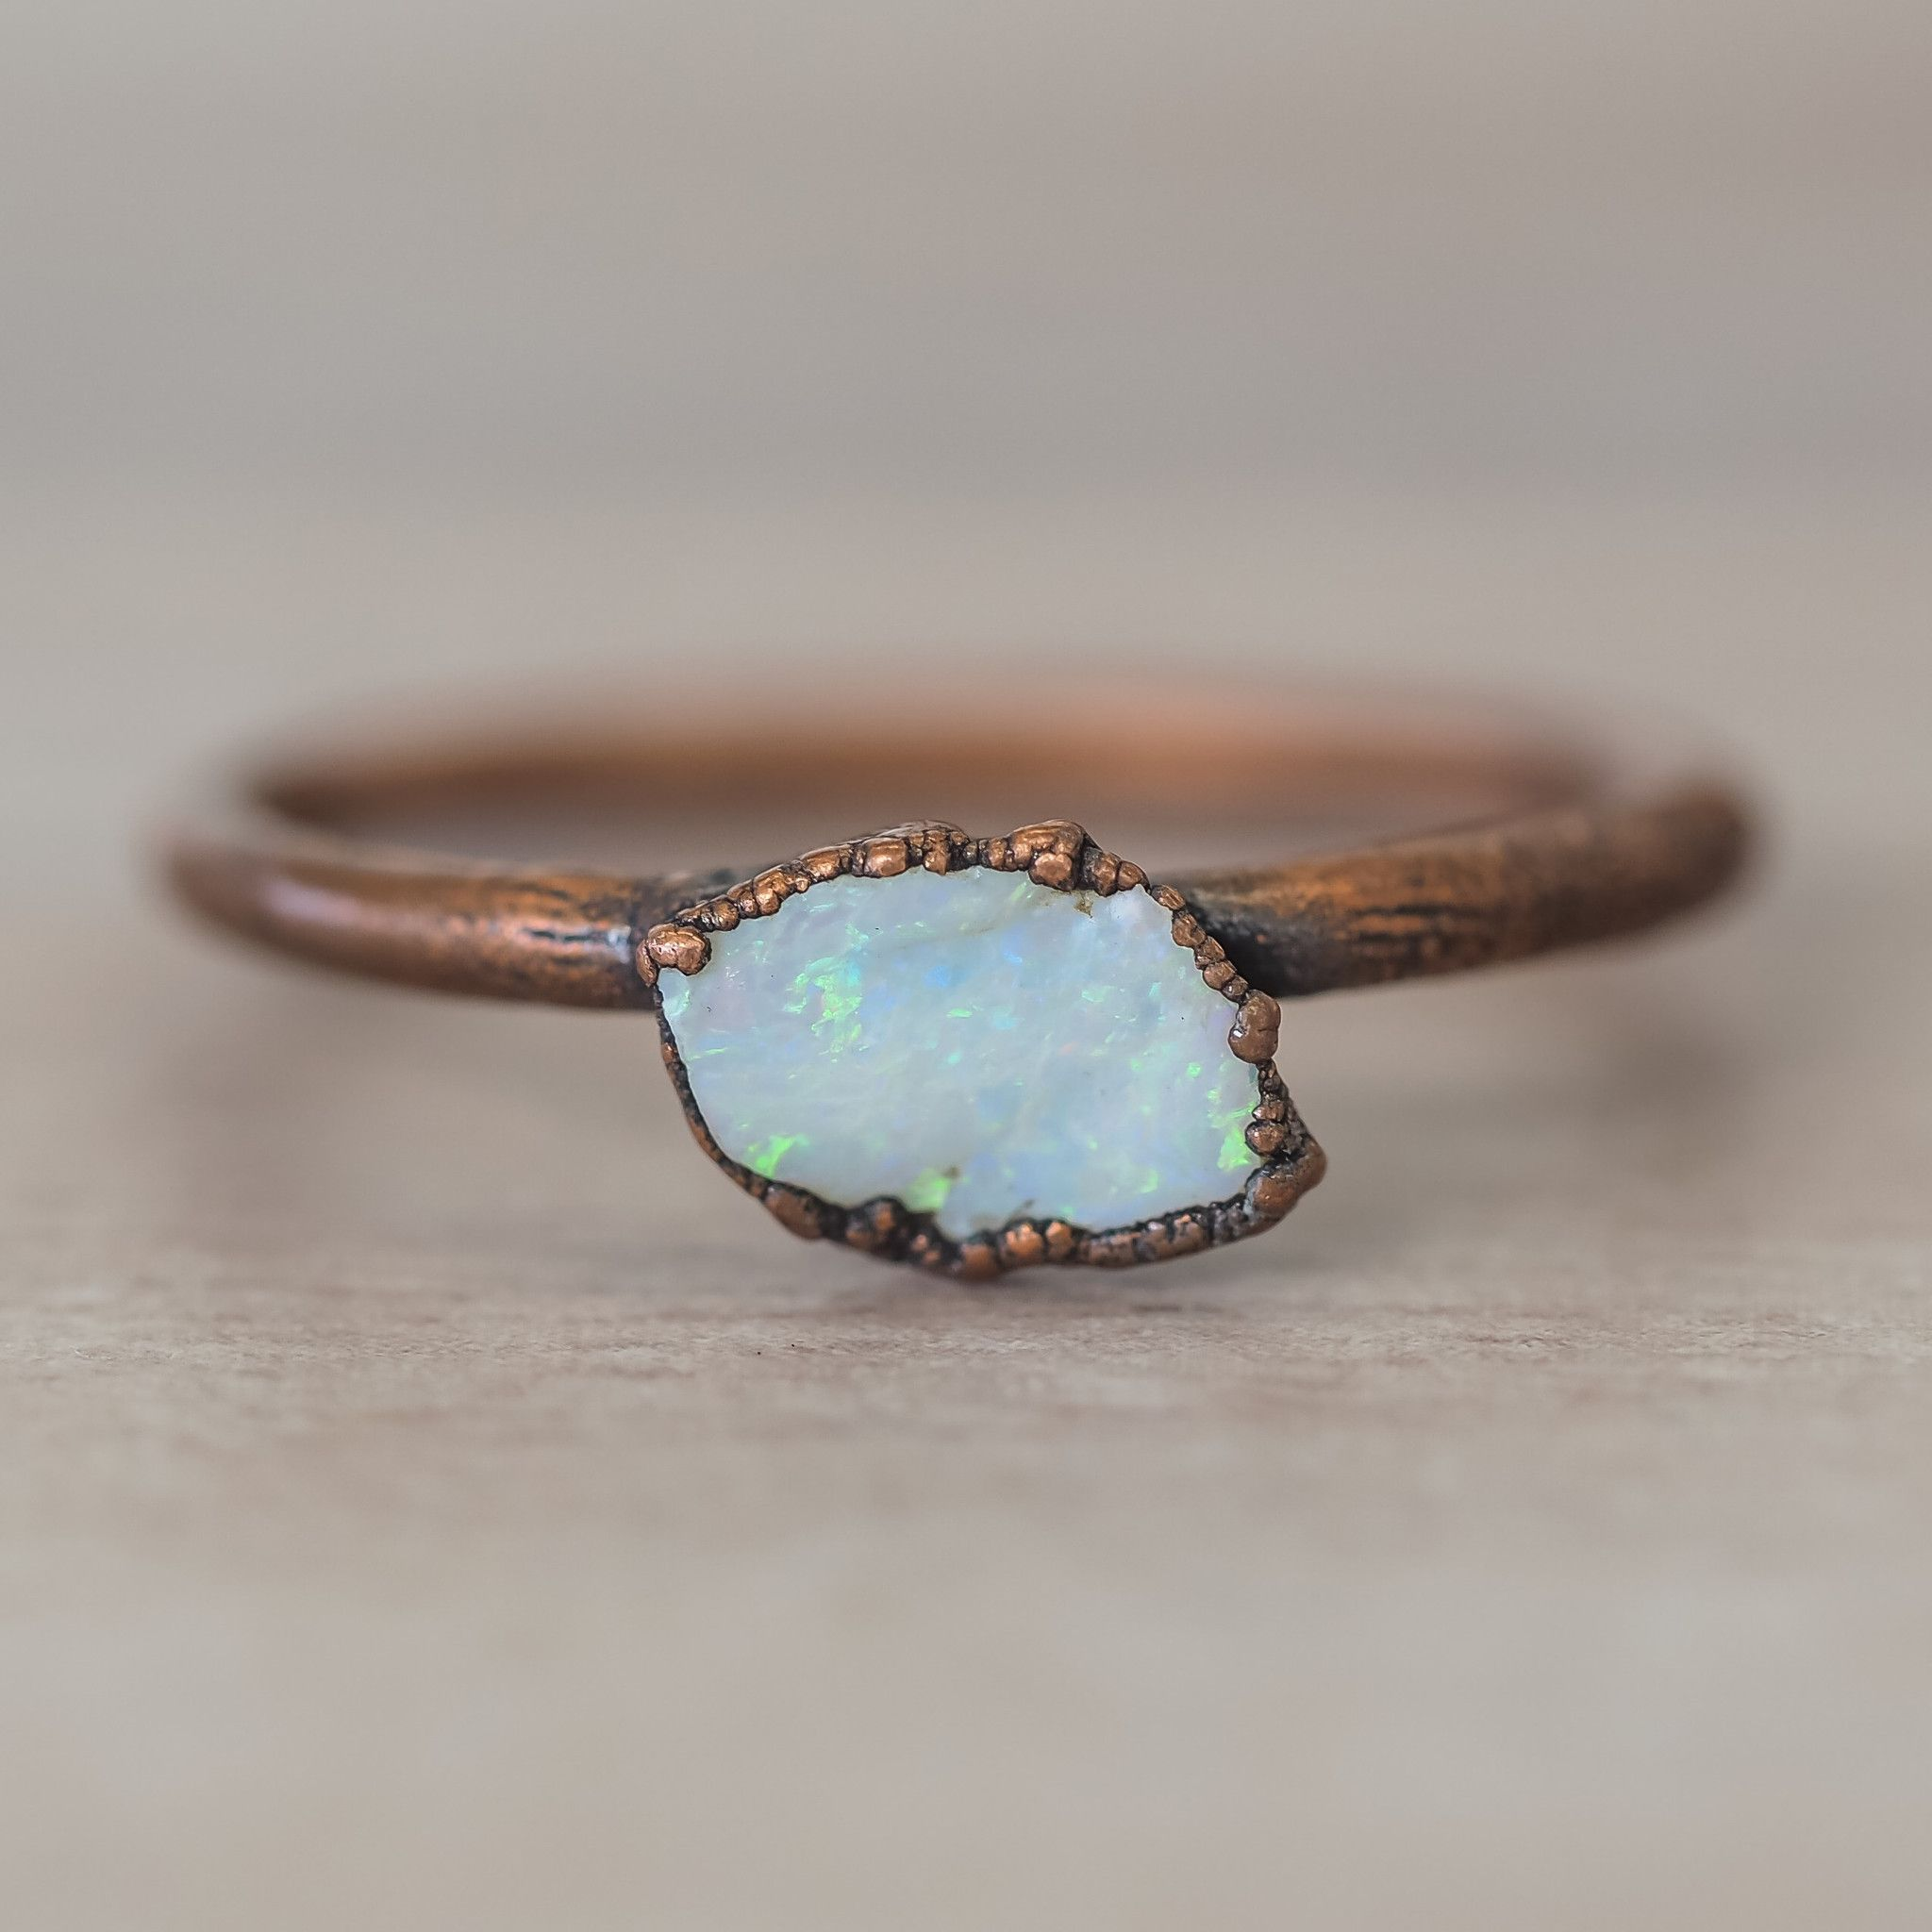 Australian Raw Opal and Copper Ring | Bohemian Gypsy Jewelry | Boho Festival Jewellery | Hippie Style Fashion | Indie and Harper